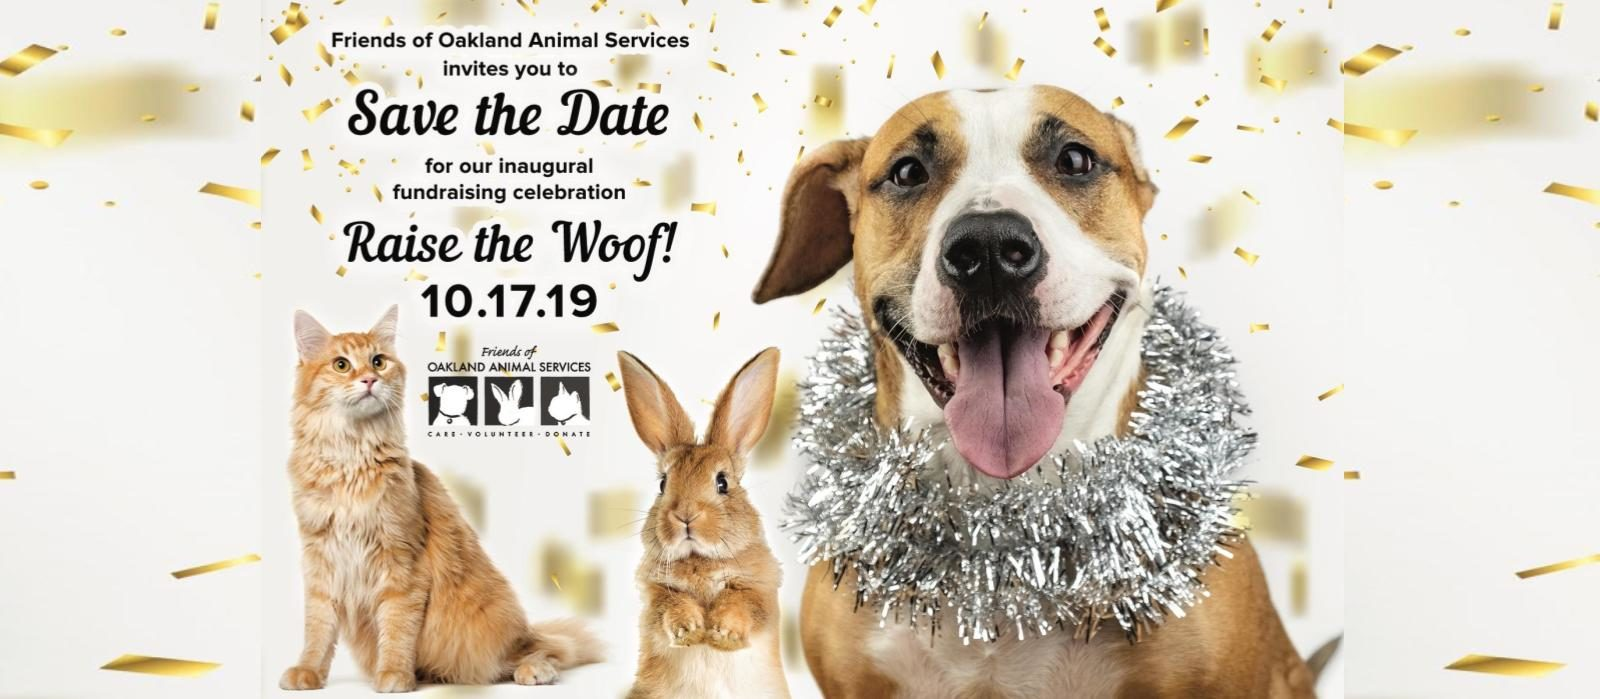 Come Raise the Woof with Oakland Animal Services!